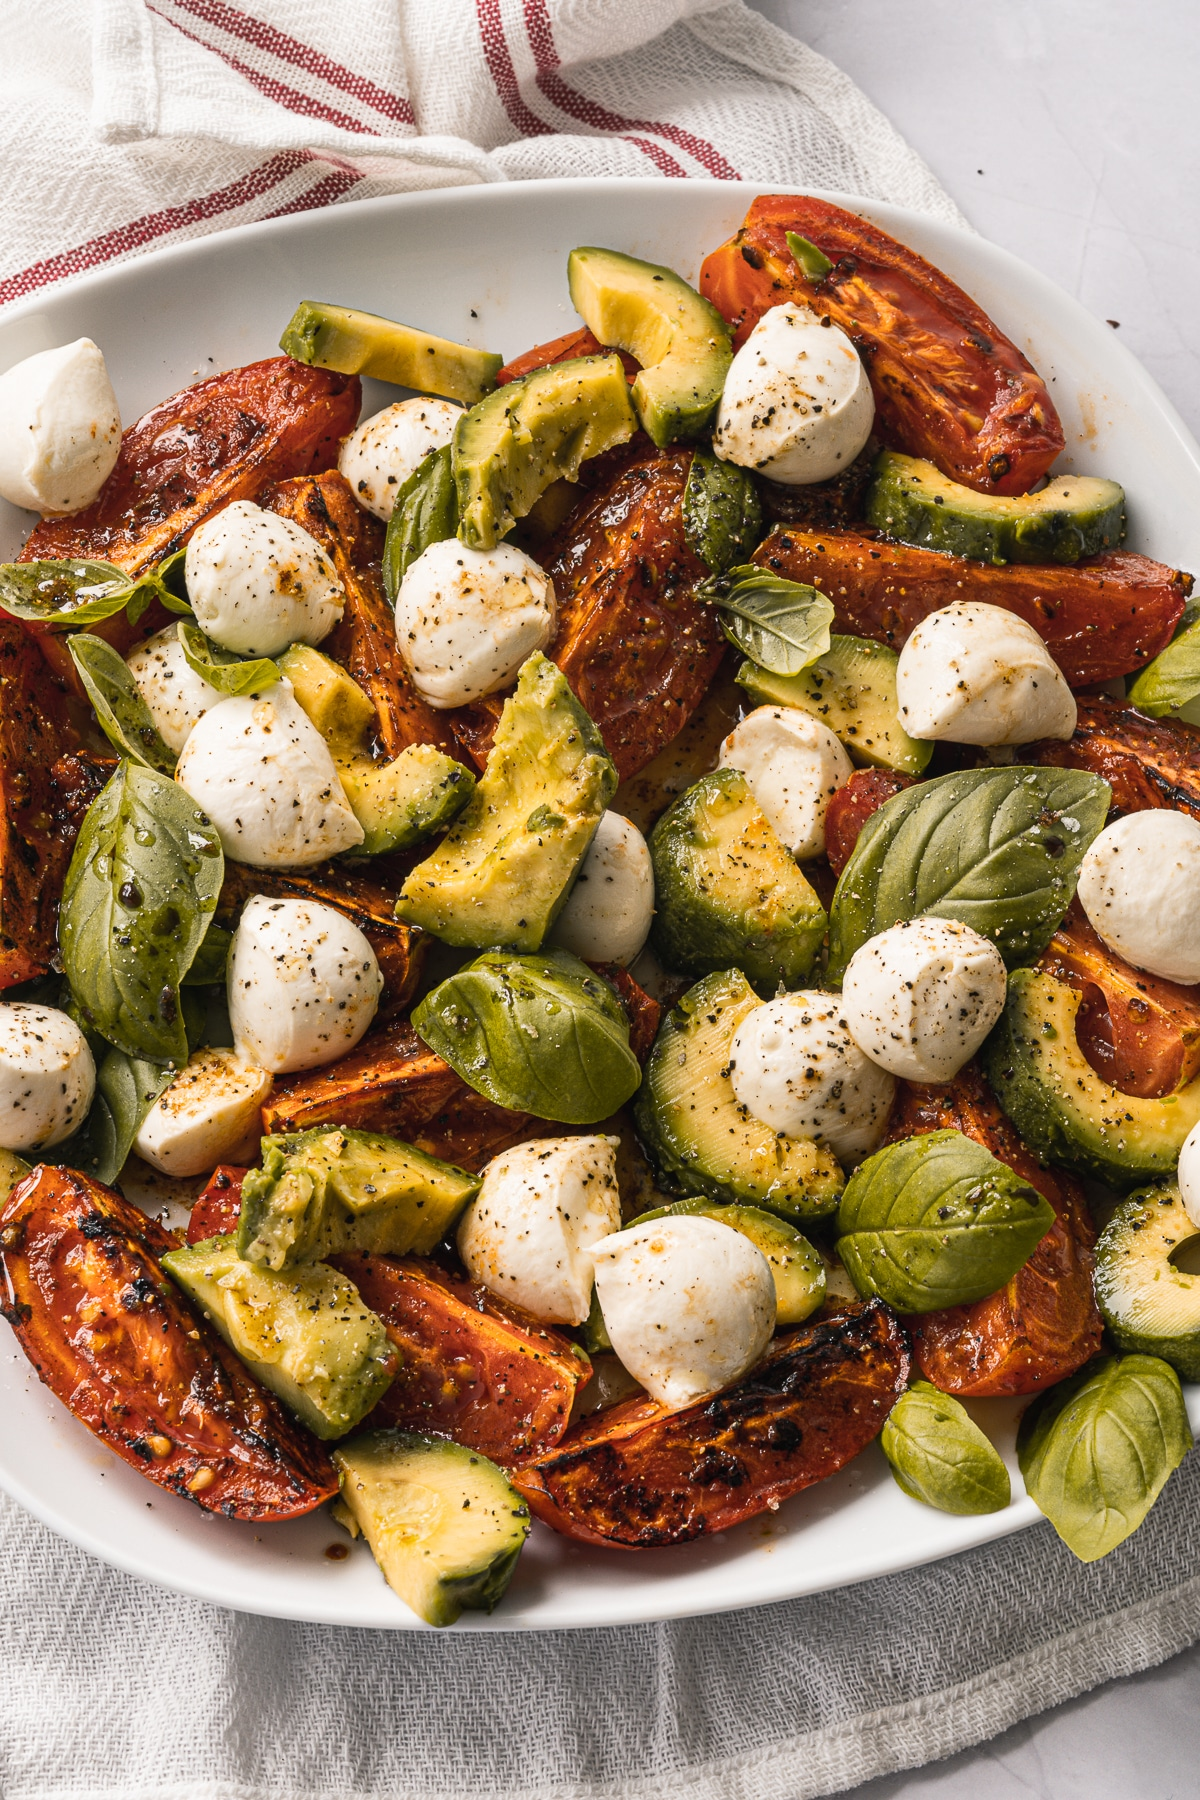 Light, healthy and ridiculously easy to make, this Roasted Tomato Caprese Salad will be your new favorite vegetarian, gluten free, low carb dish!